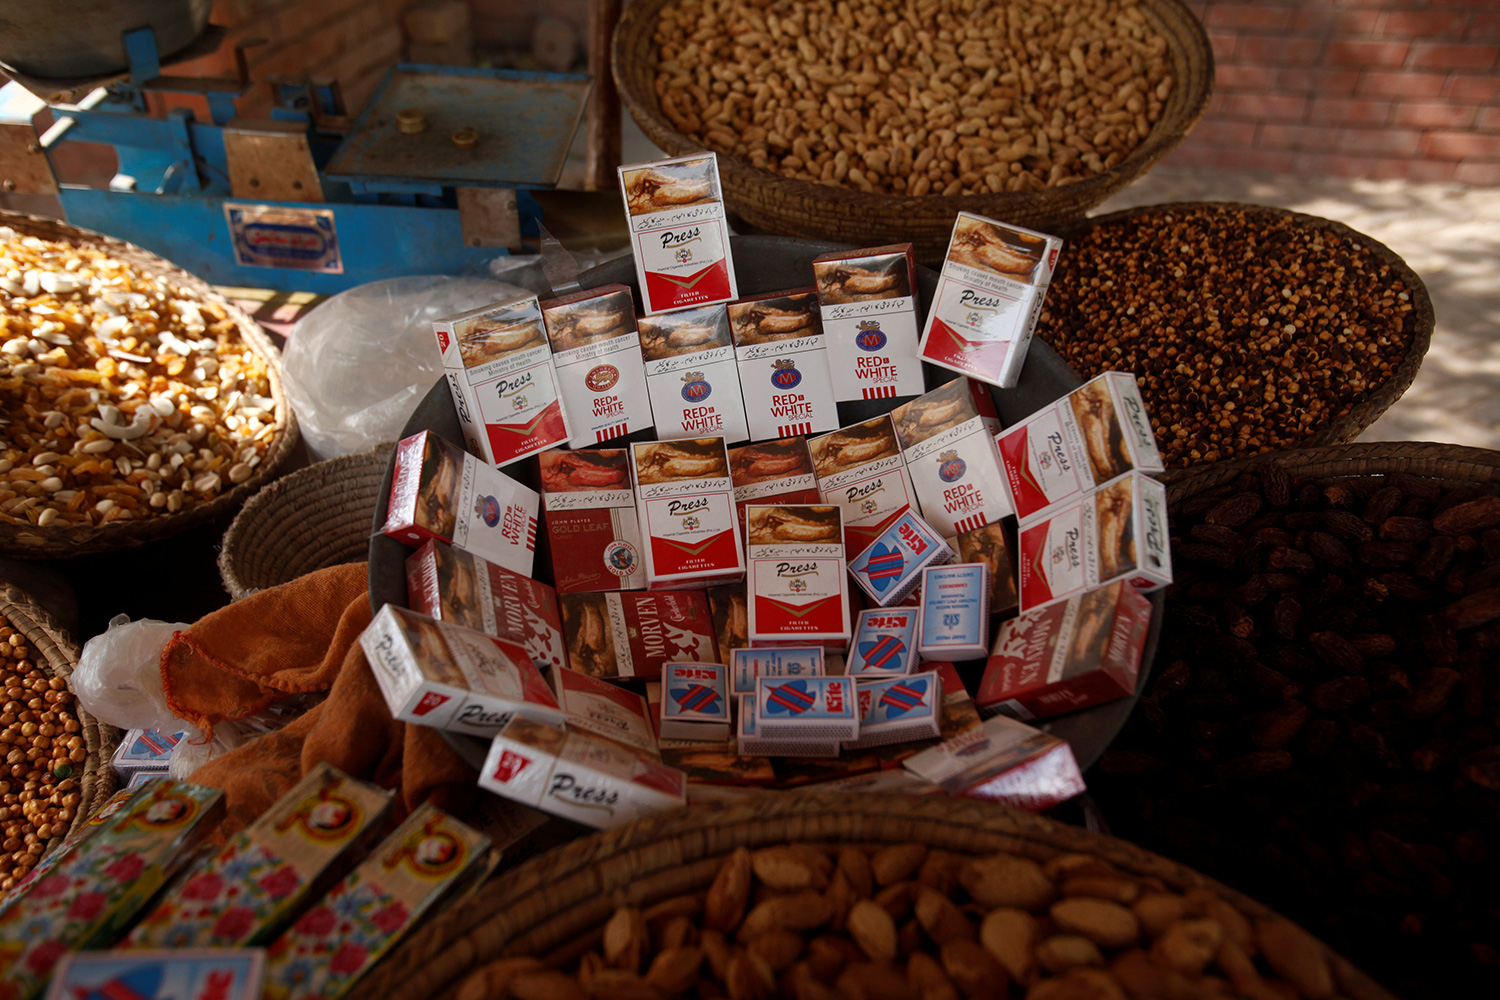 The photo shows a street stand with piles of nuts and mounds of smokes.